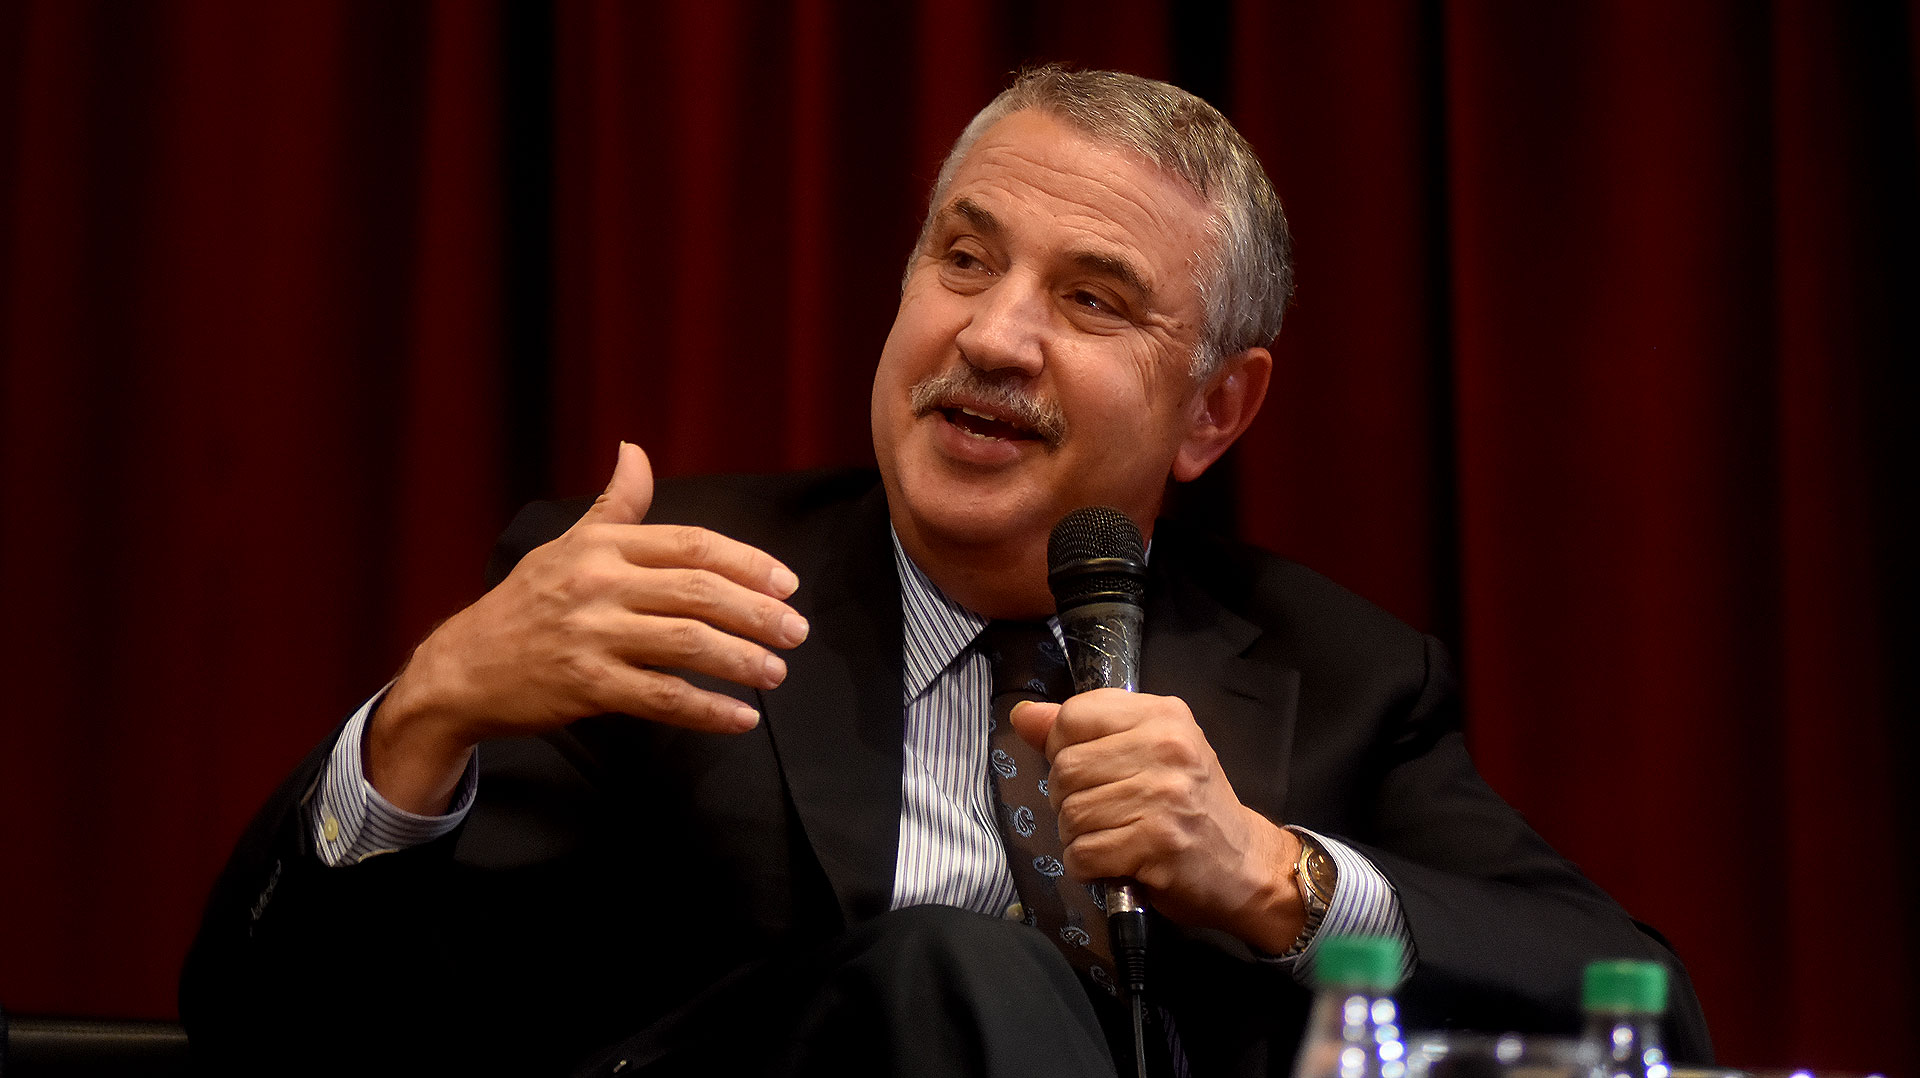 El columnista estrella de The New York Times Thomas Friedman